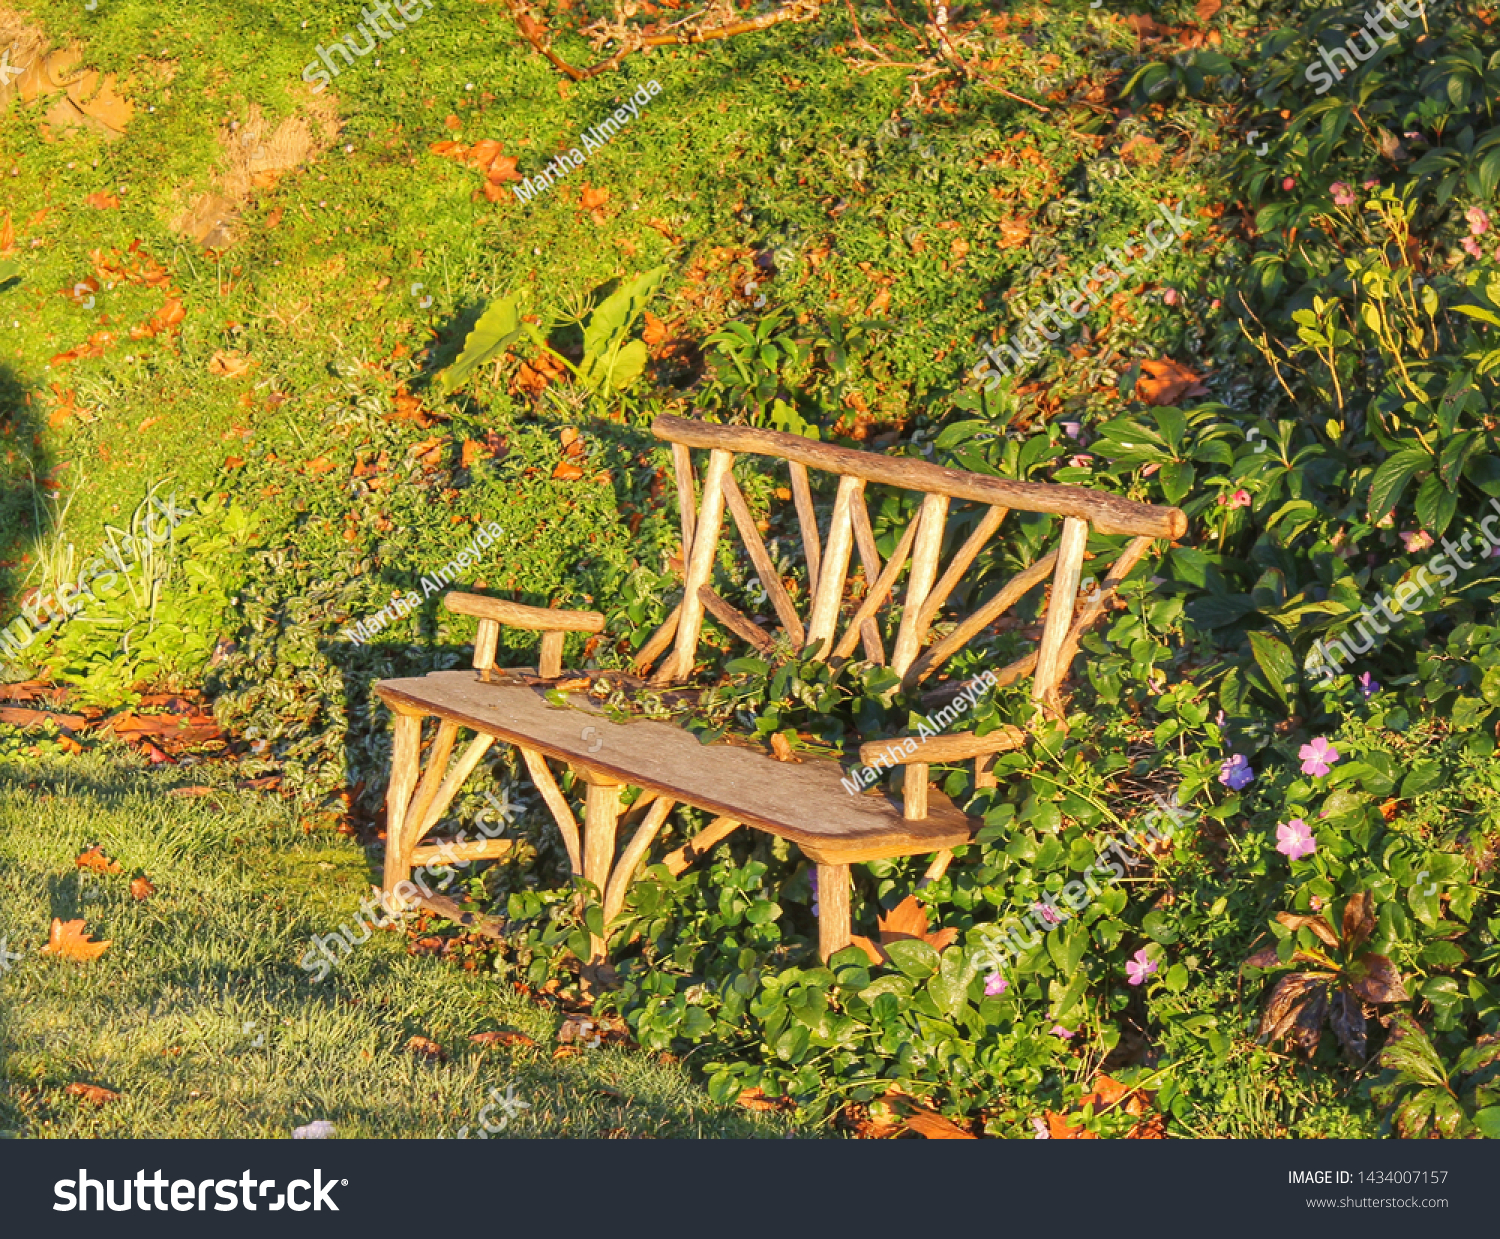 Rustic Wood Bench Green Country Area Stock Photo Edit Now 1434007157